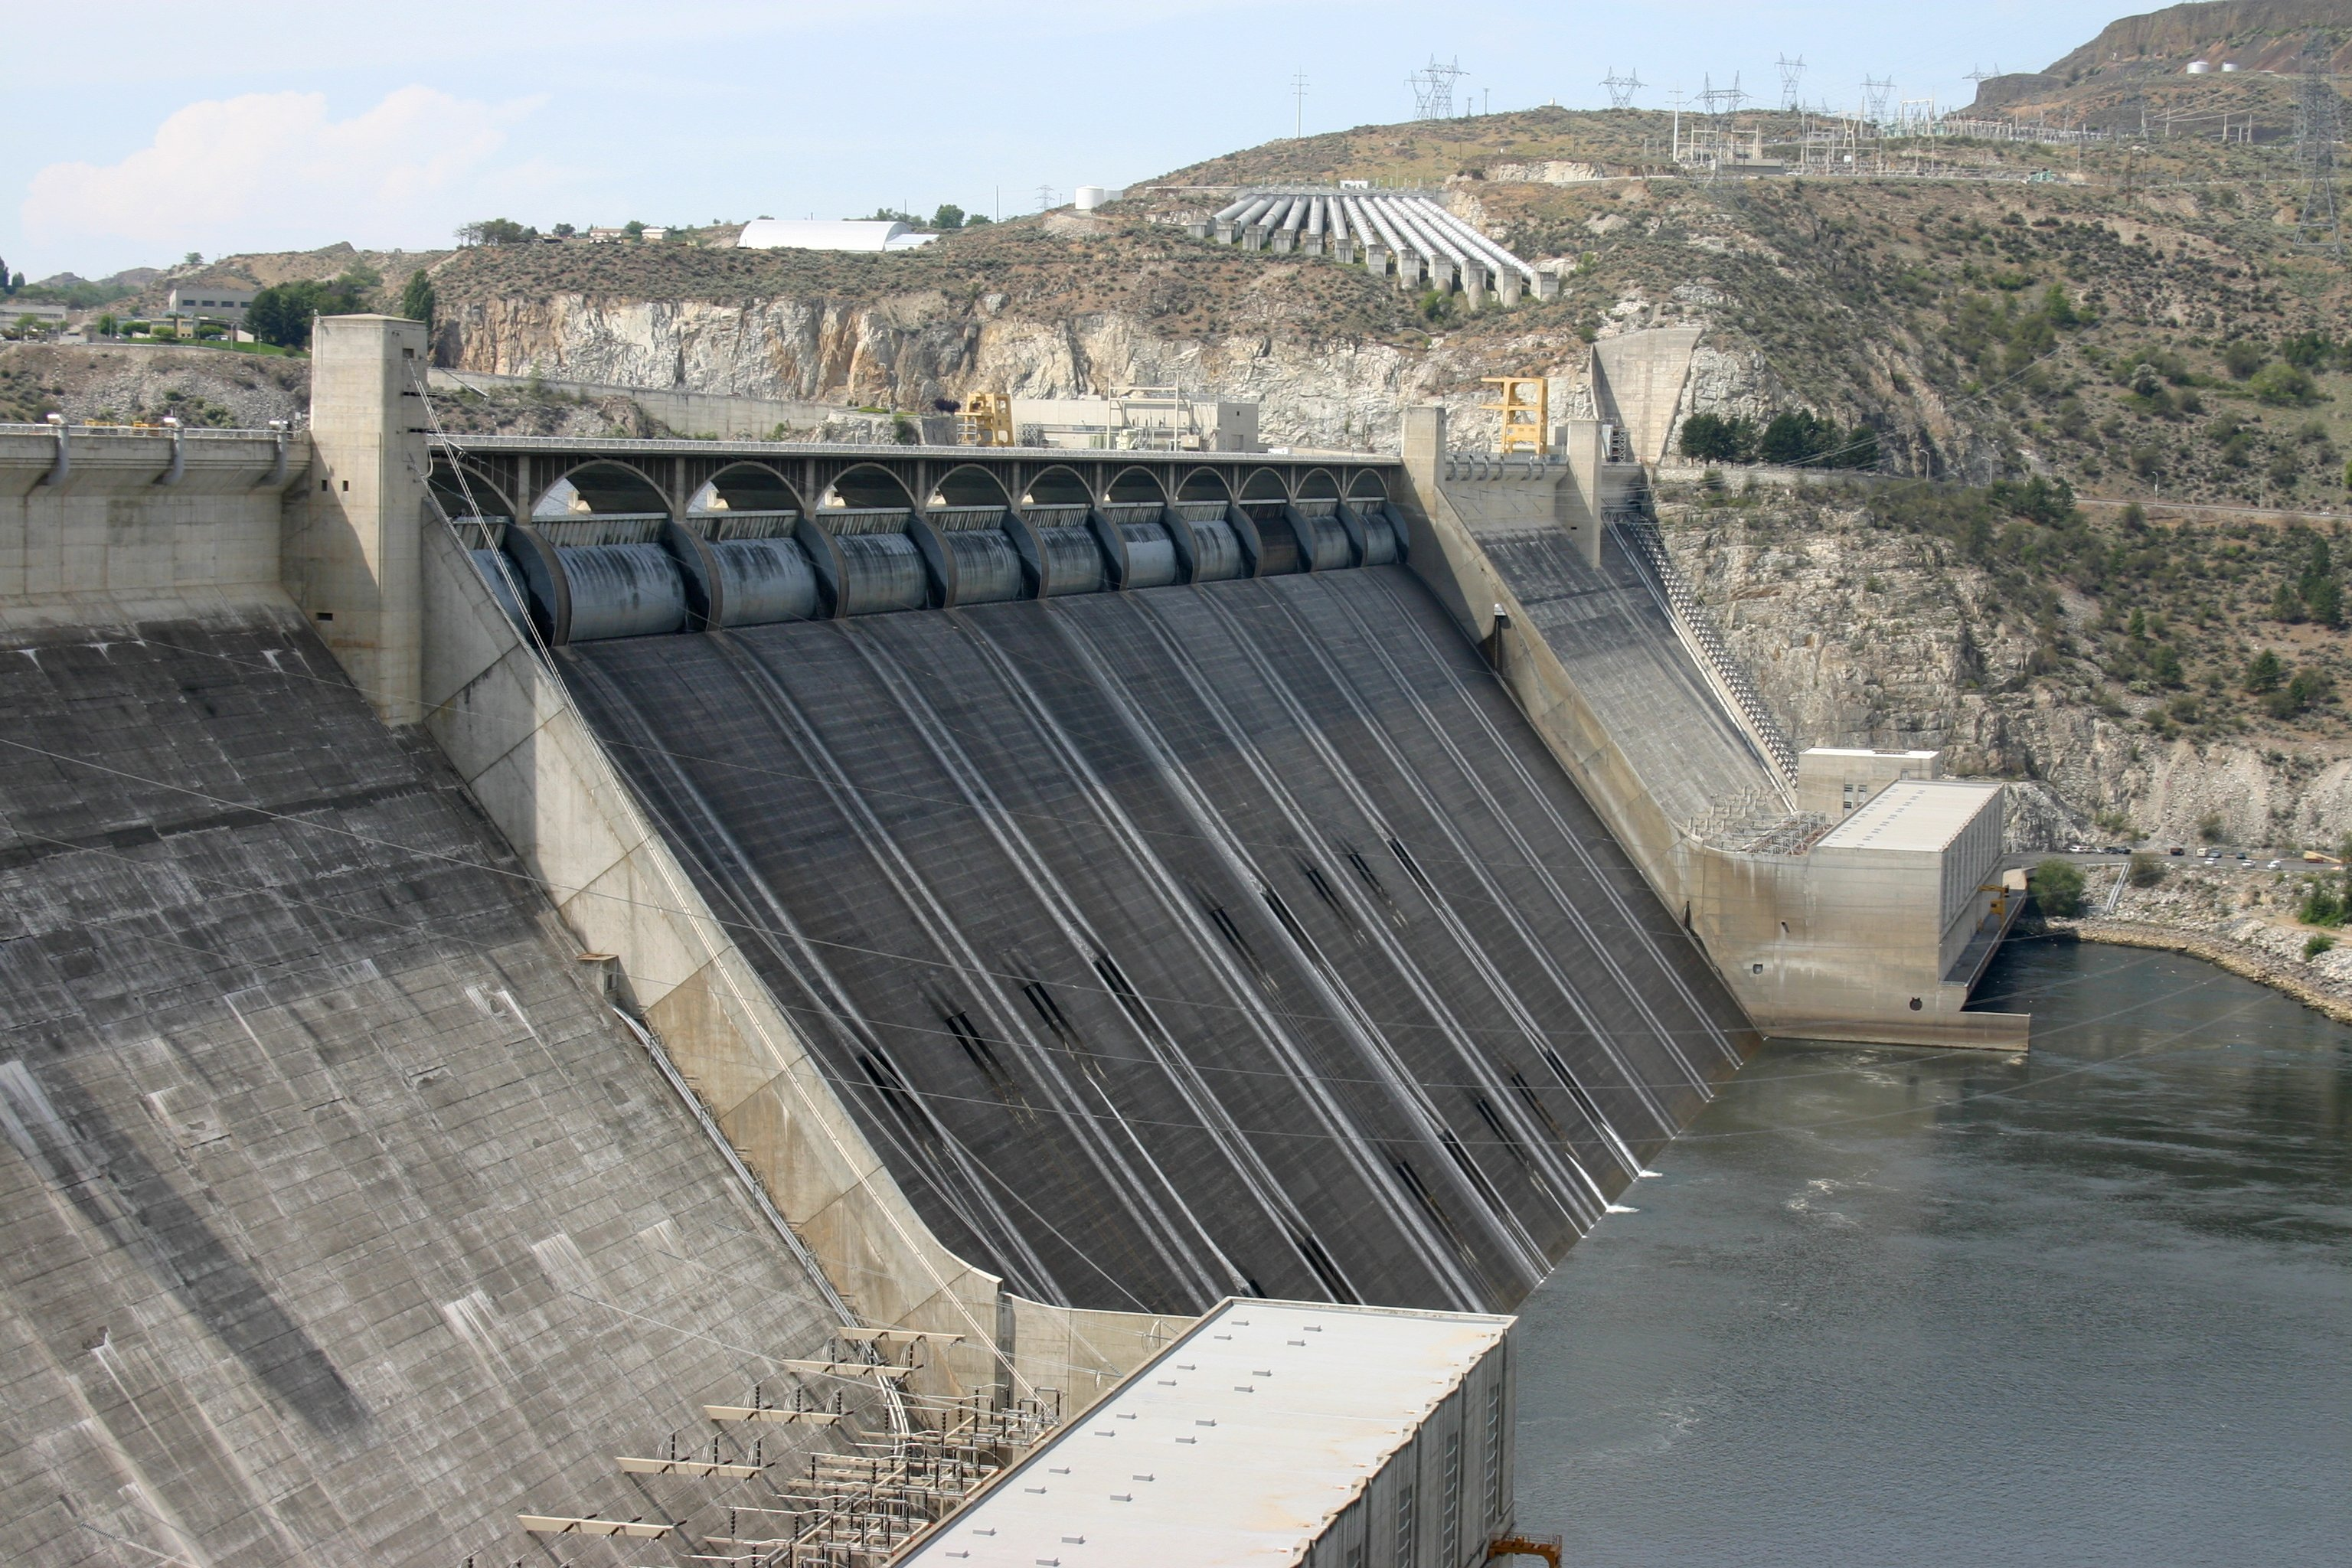 File:Grand Coulee Dam spillway.jpg - Wikimedia Commons